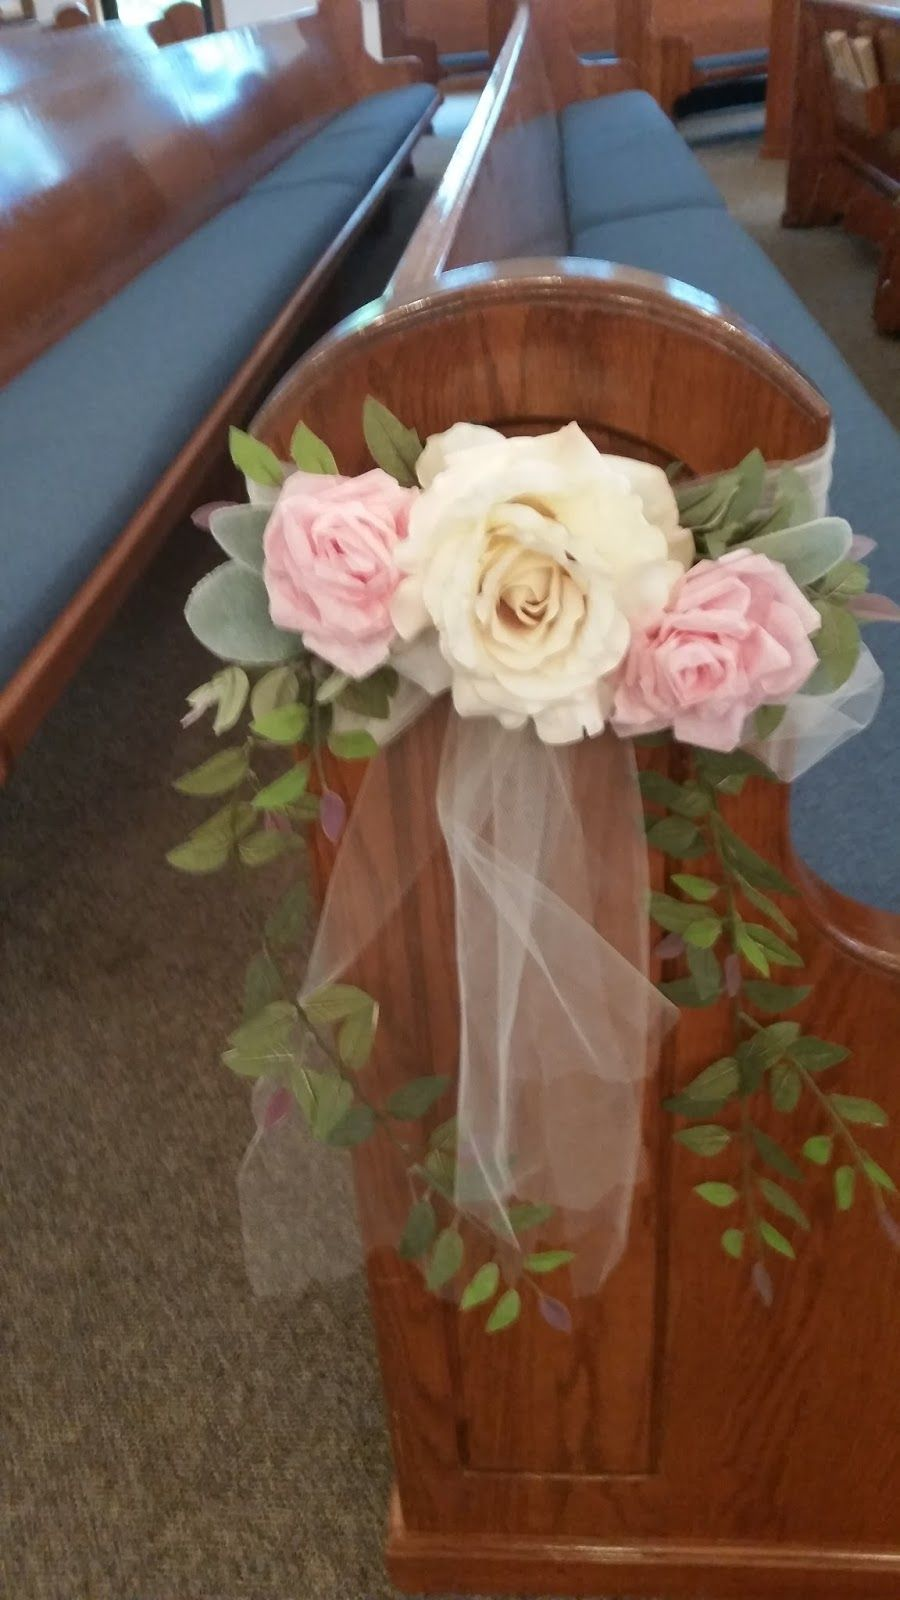 Hope and joy home diy wedding pew bows pinteres hope and joy home diy wedding pew bows junglespirit Gallery